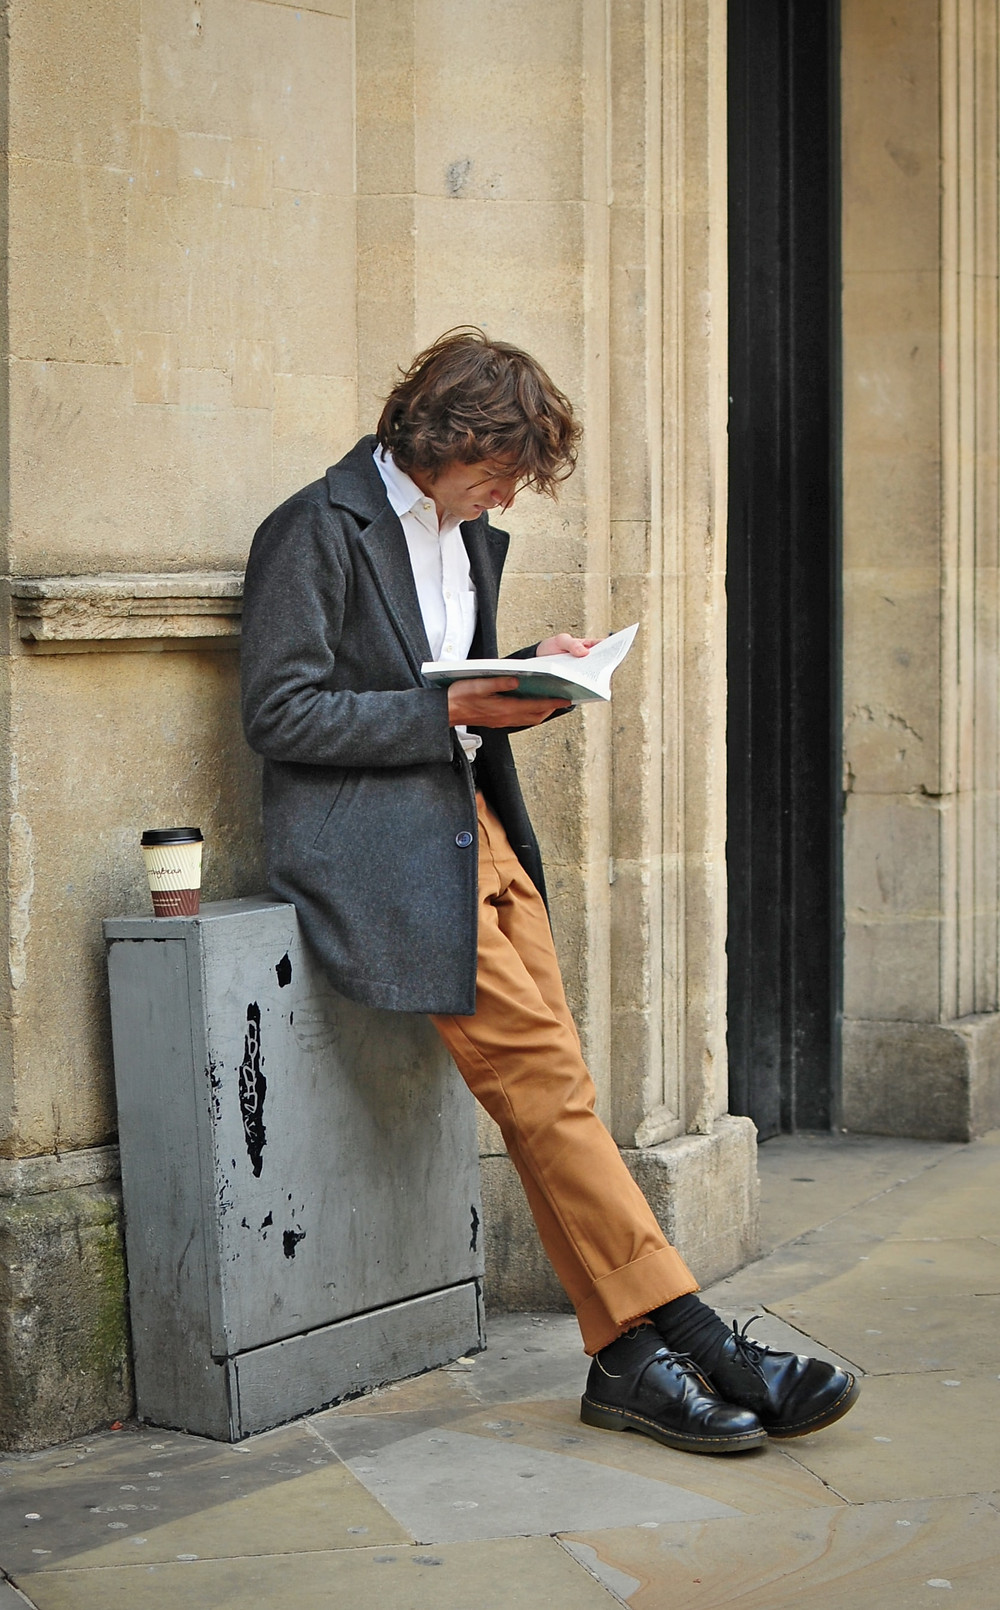 Man Reading on Street